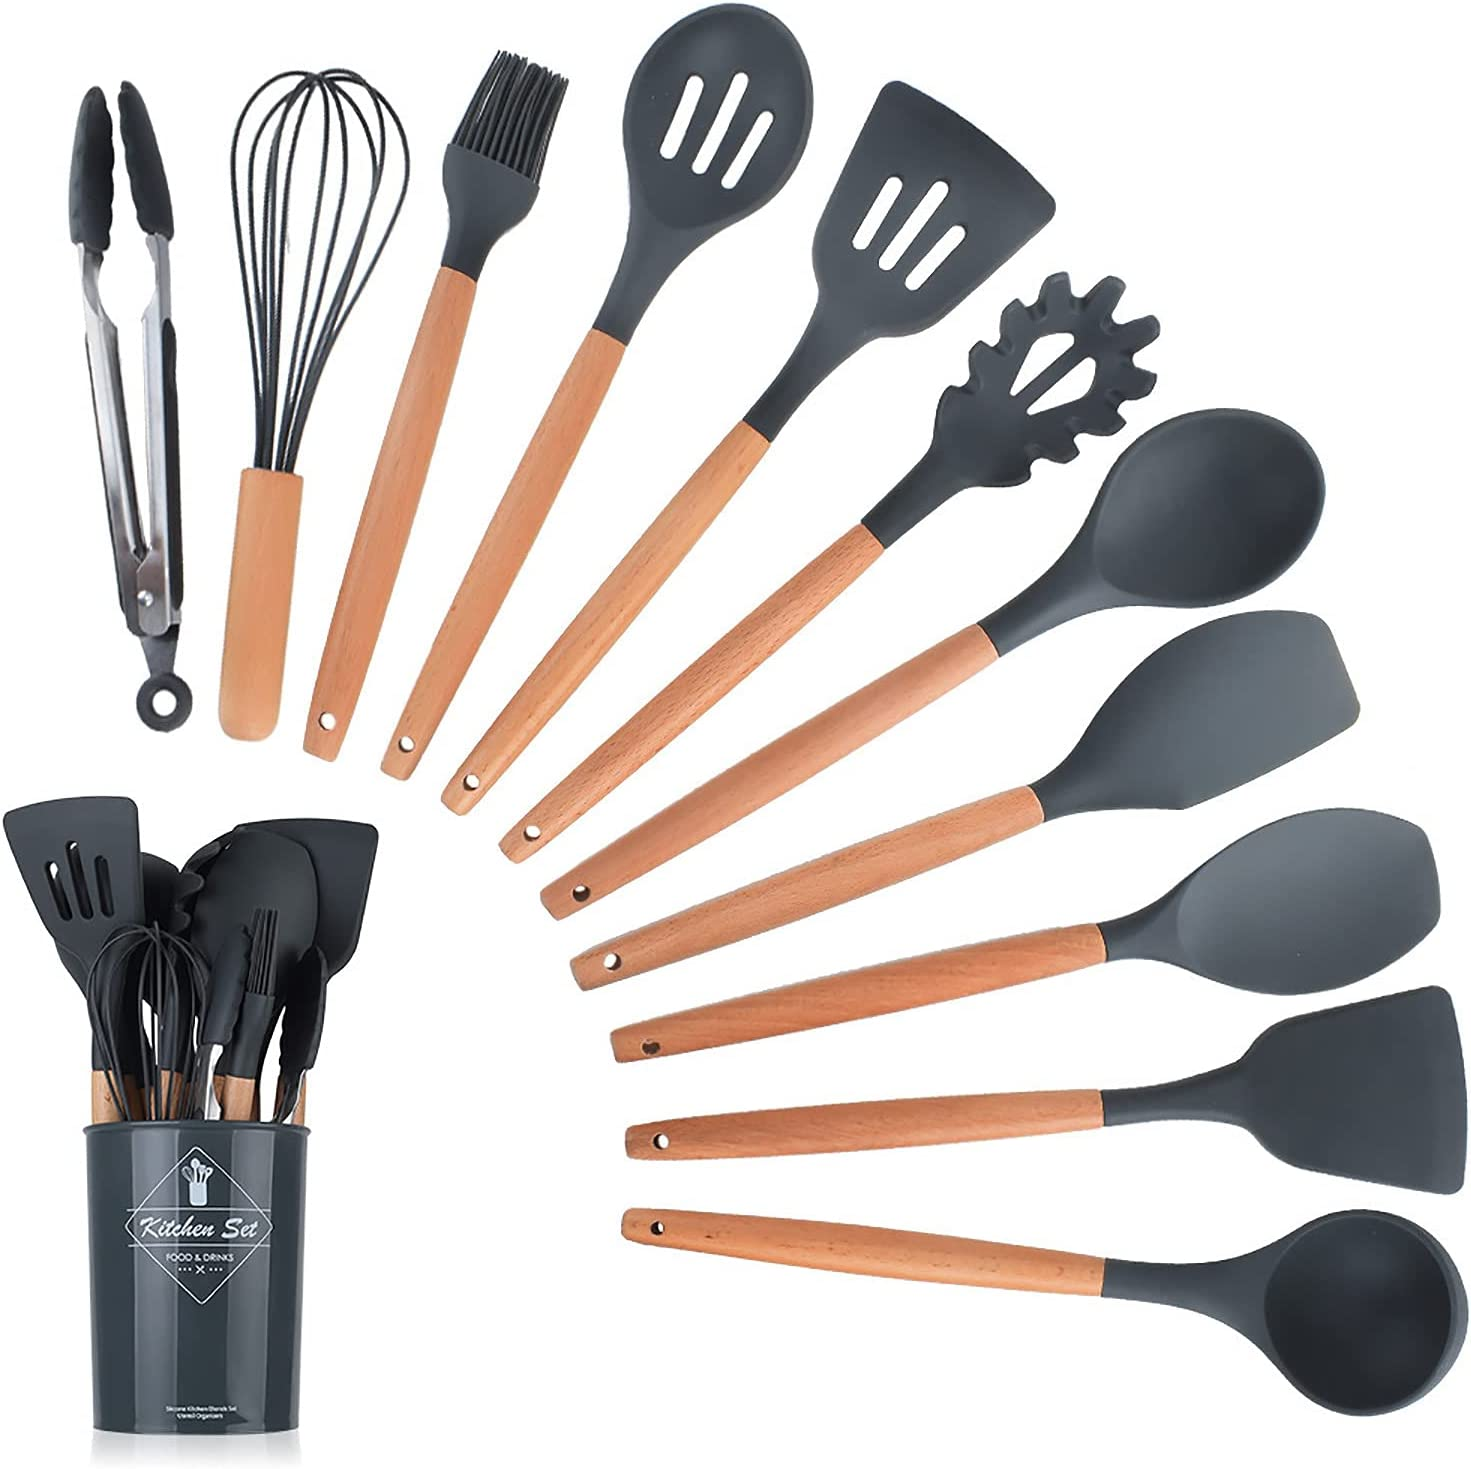 clhjinruoliu Kitchen Utensils Set Pieces Minneapolis Mall 11 Don't miss the campaign Silicone Heat-Resis